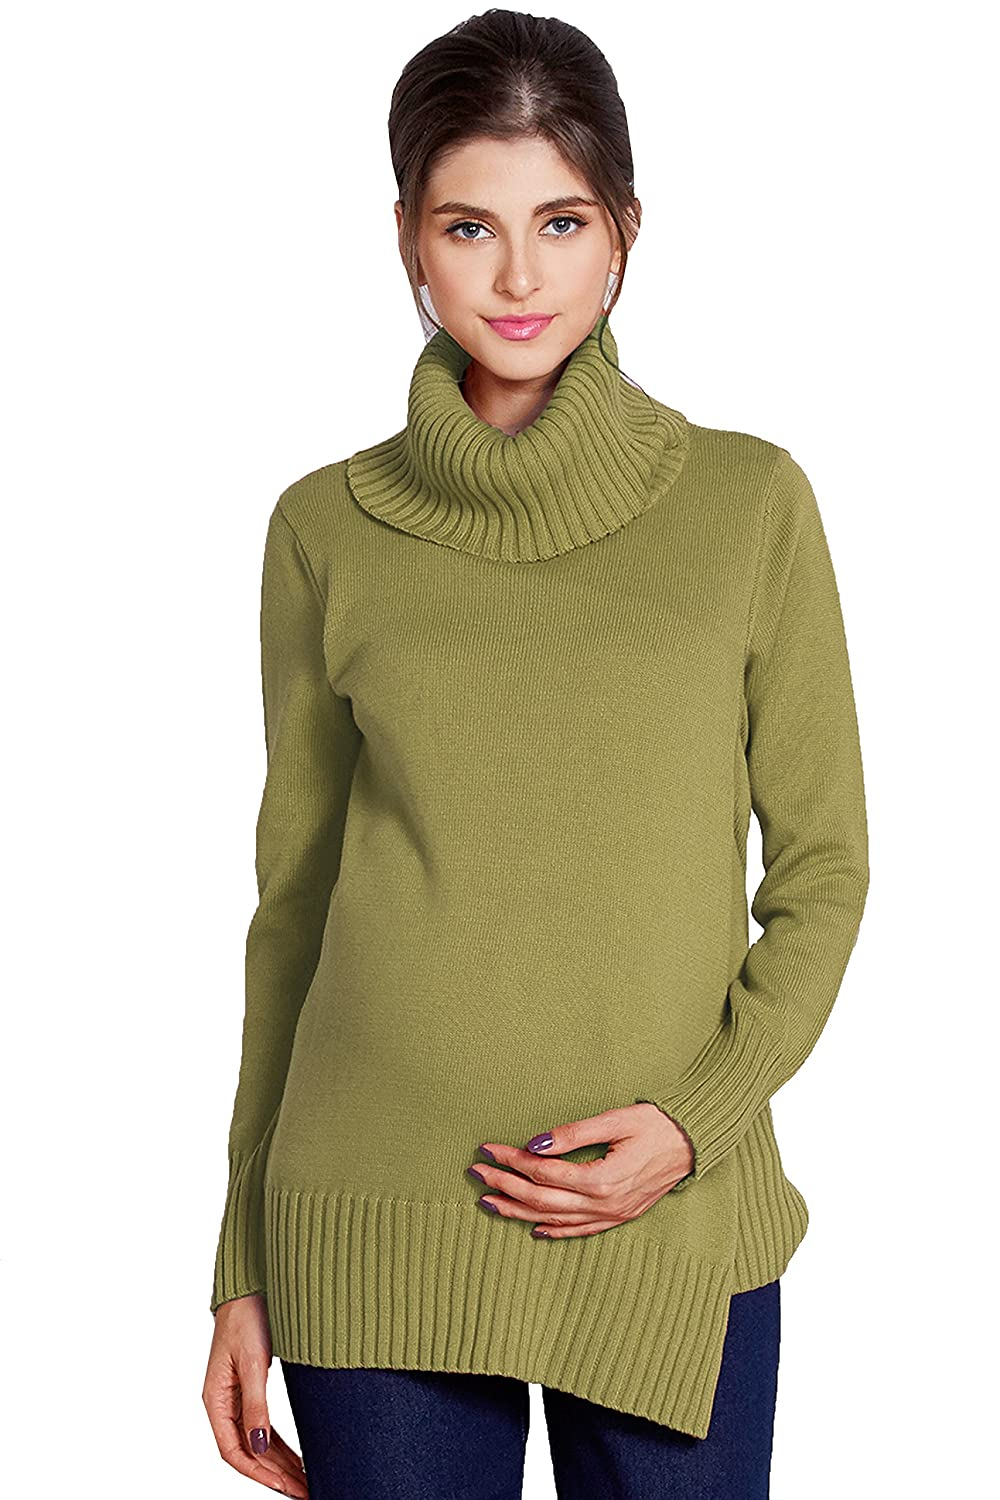 Sweet Mommy Organic Cotton Tutleneck Knit Tunic Top Sweet Mommy Co. Ltd. mk4045